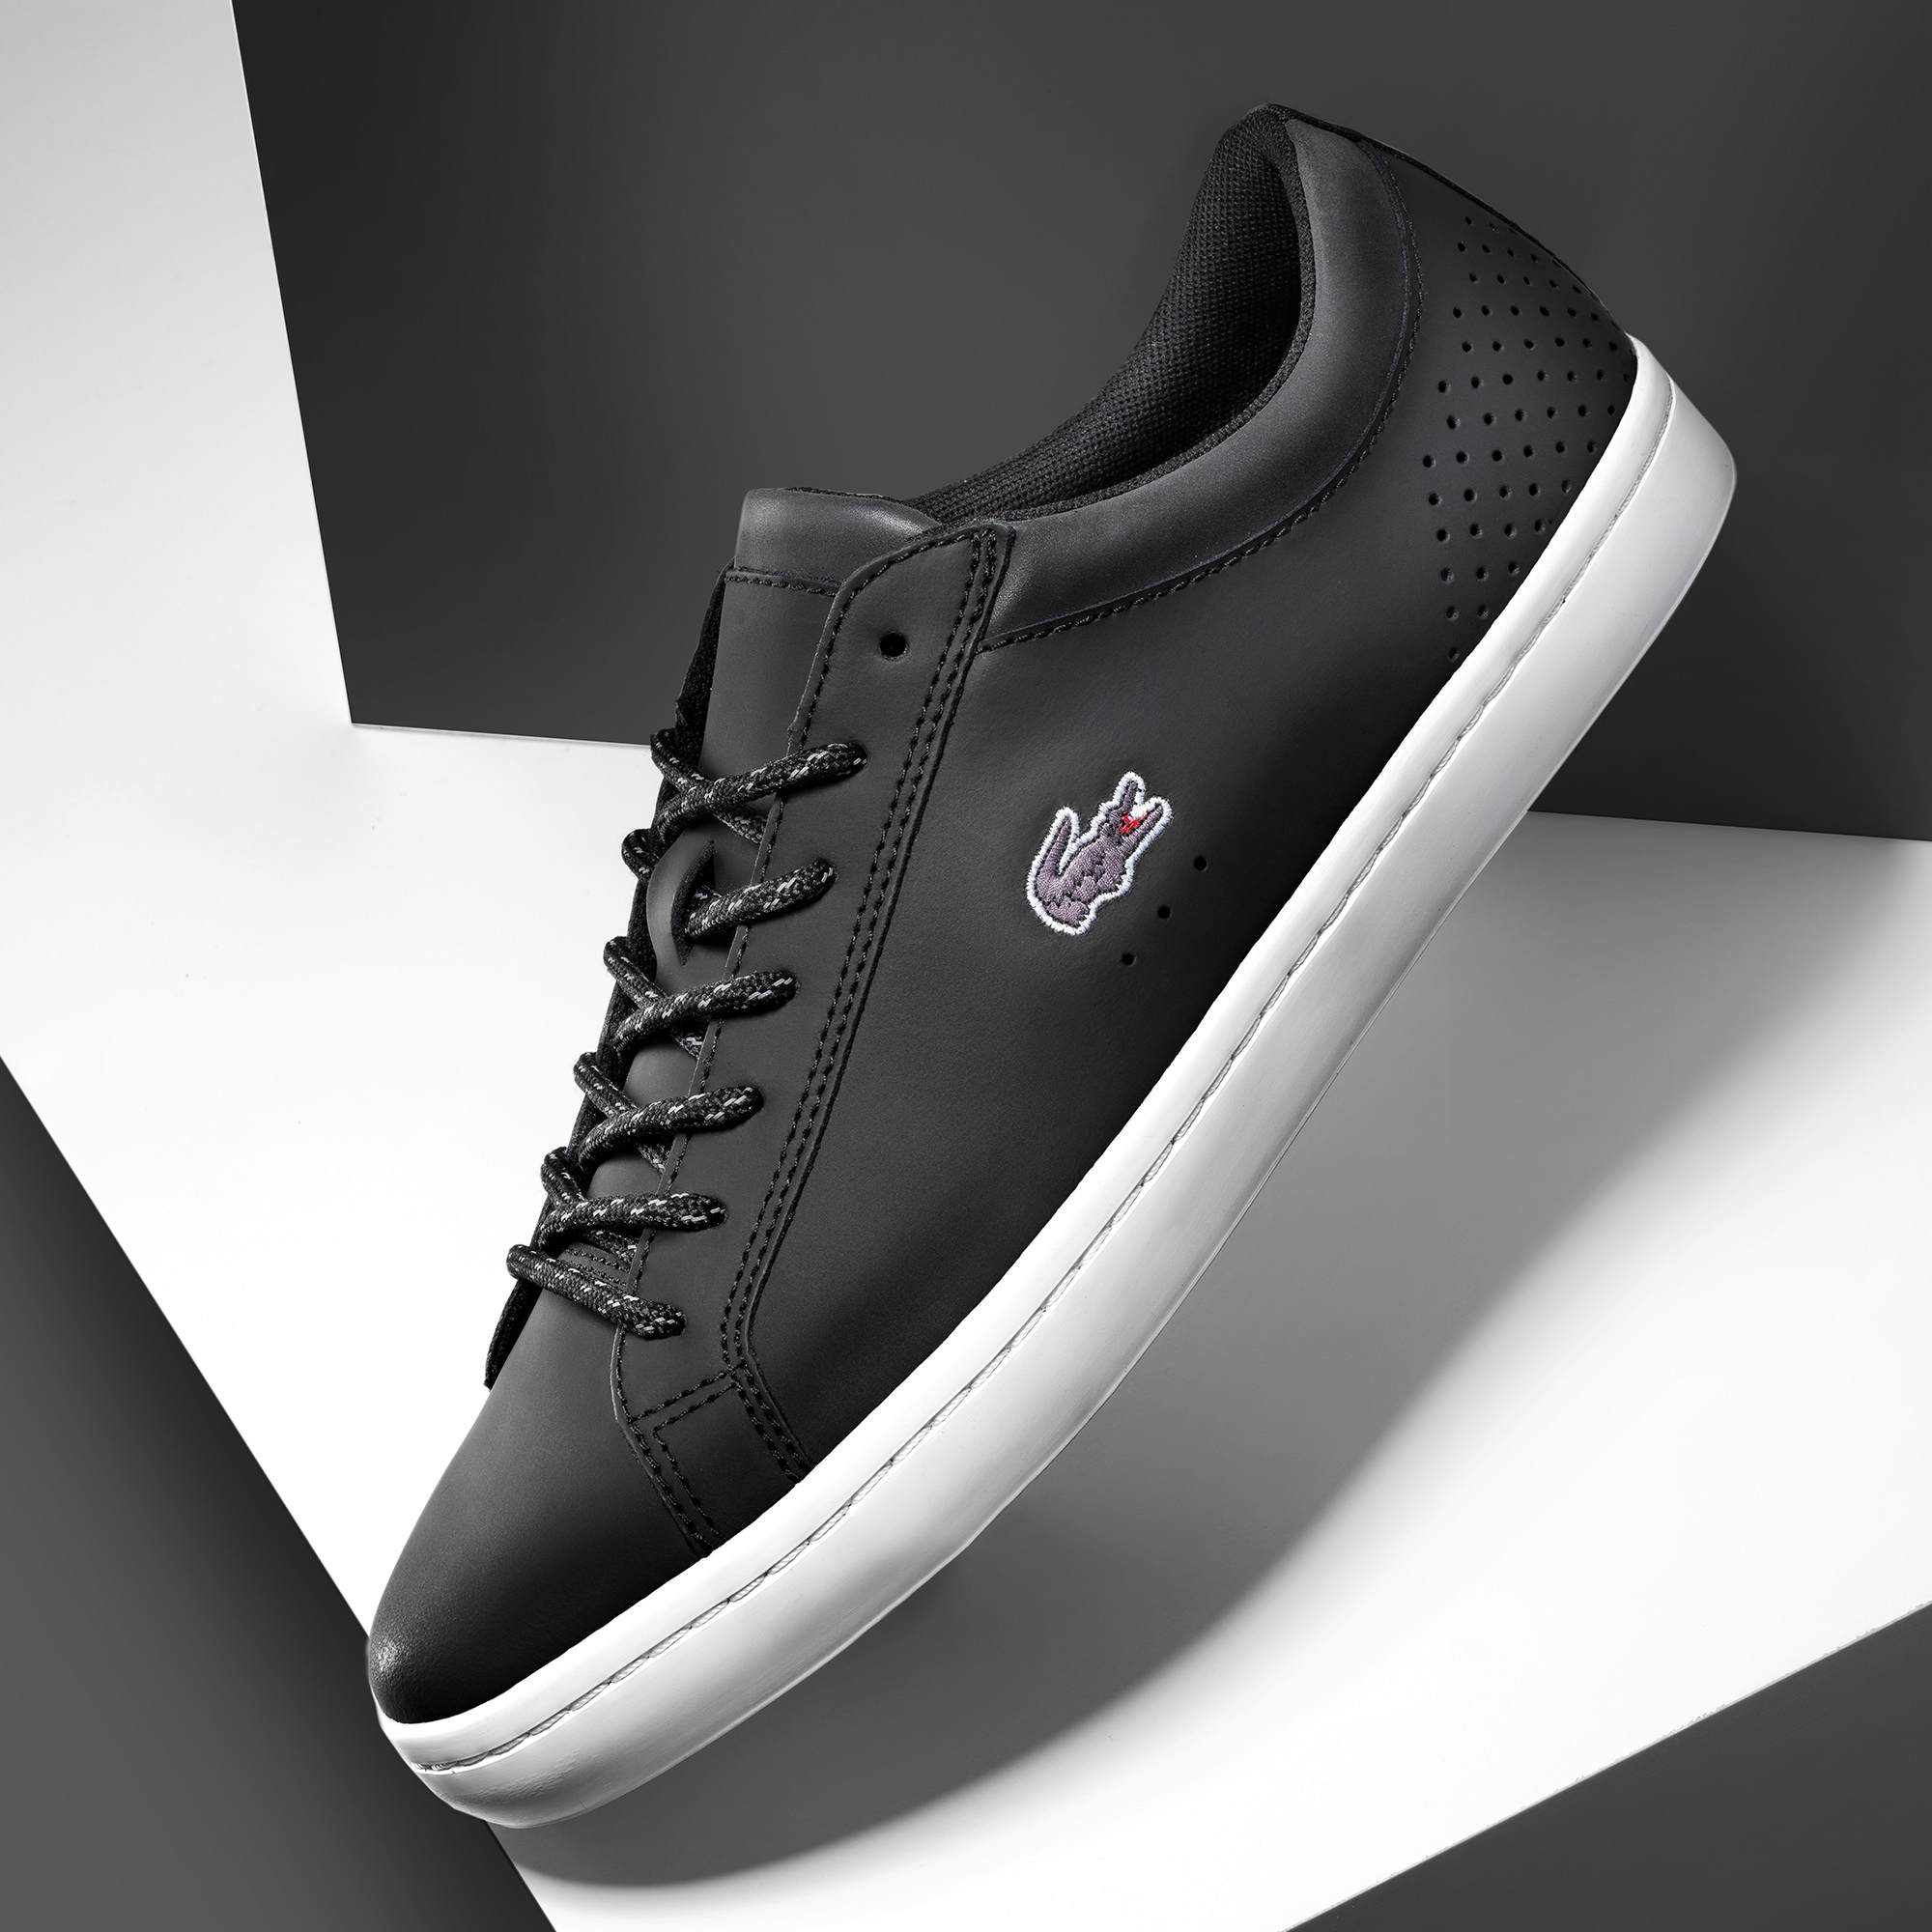 creme-creative-lacoste-reflective-pack-1.jpg